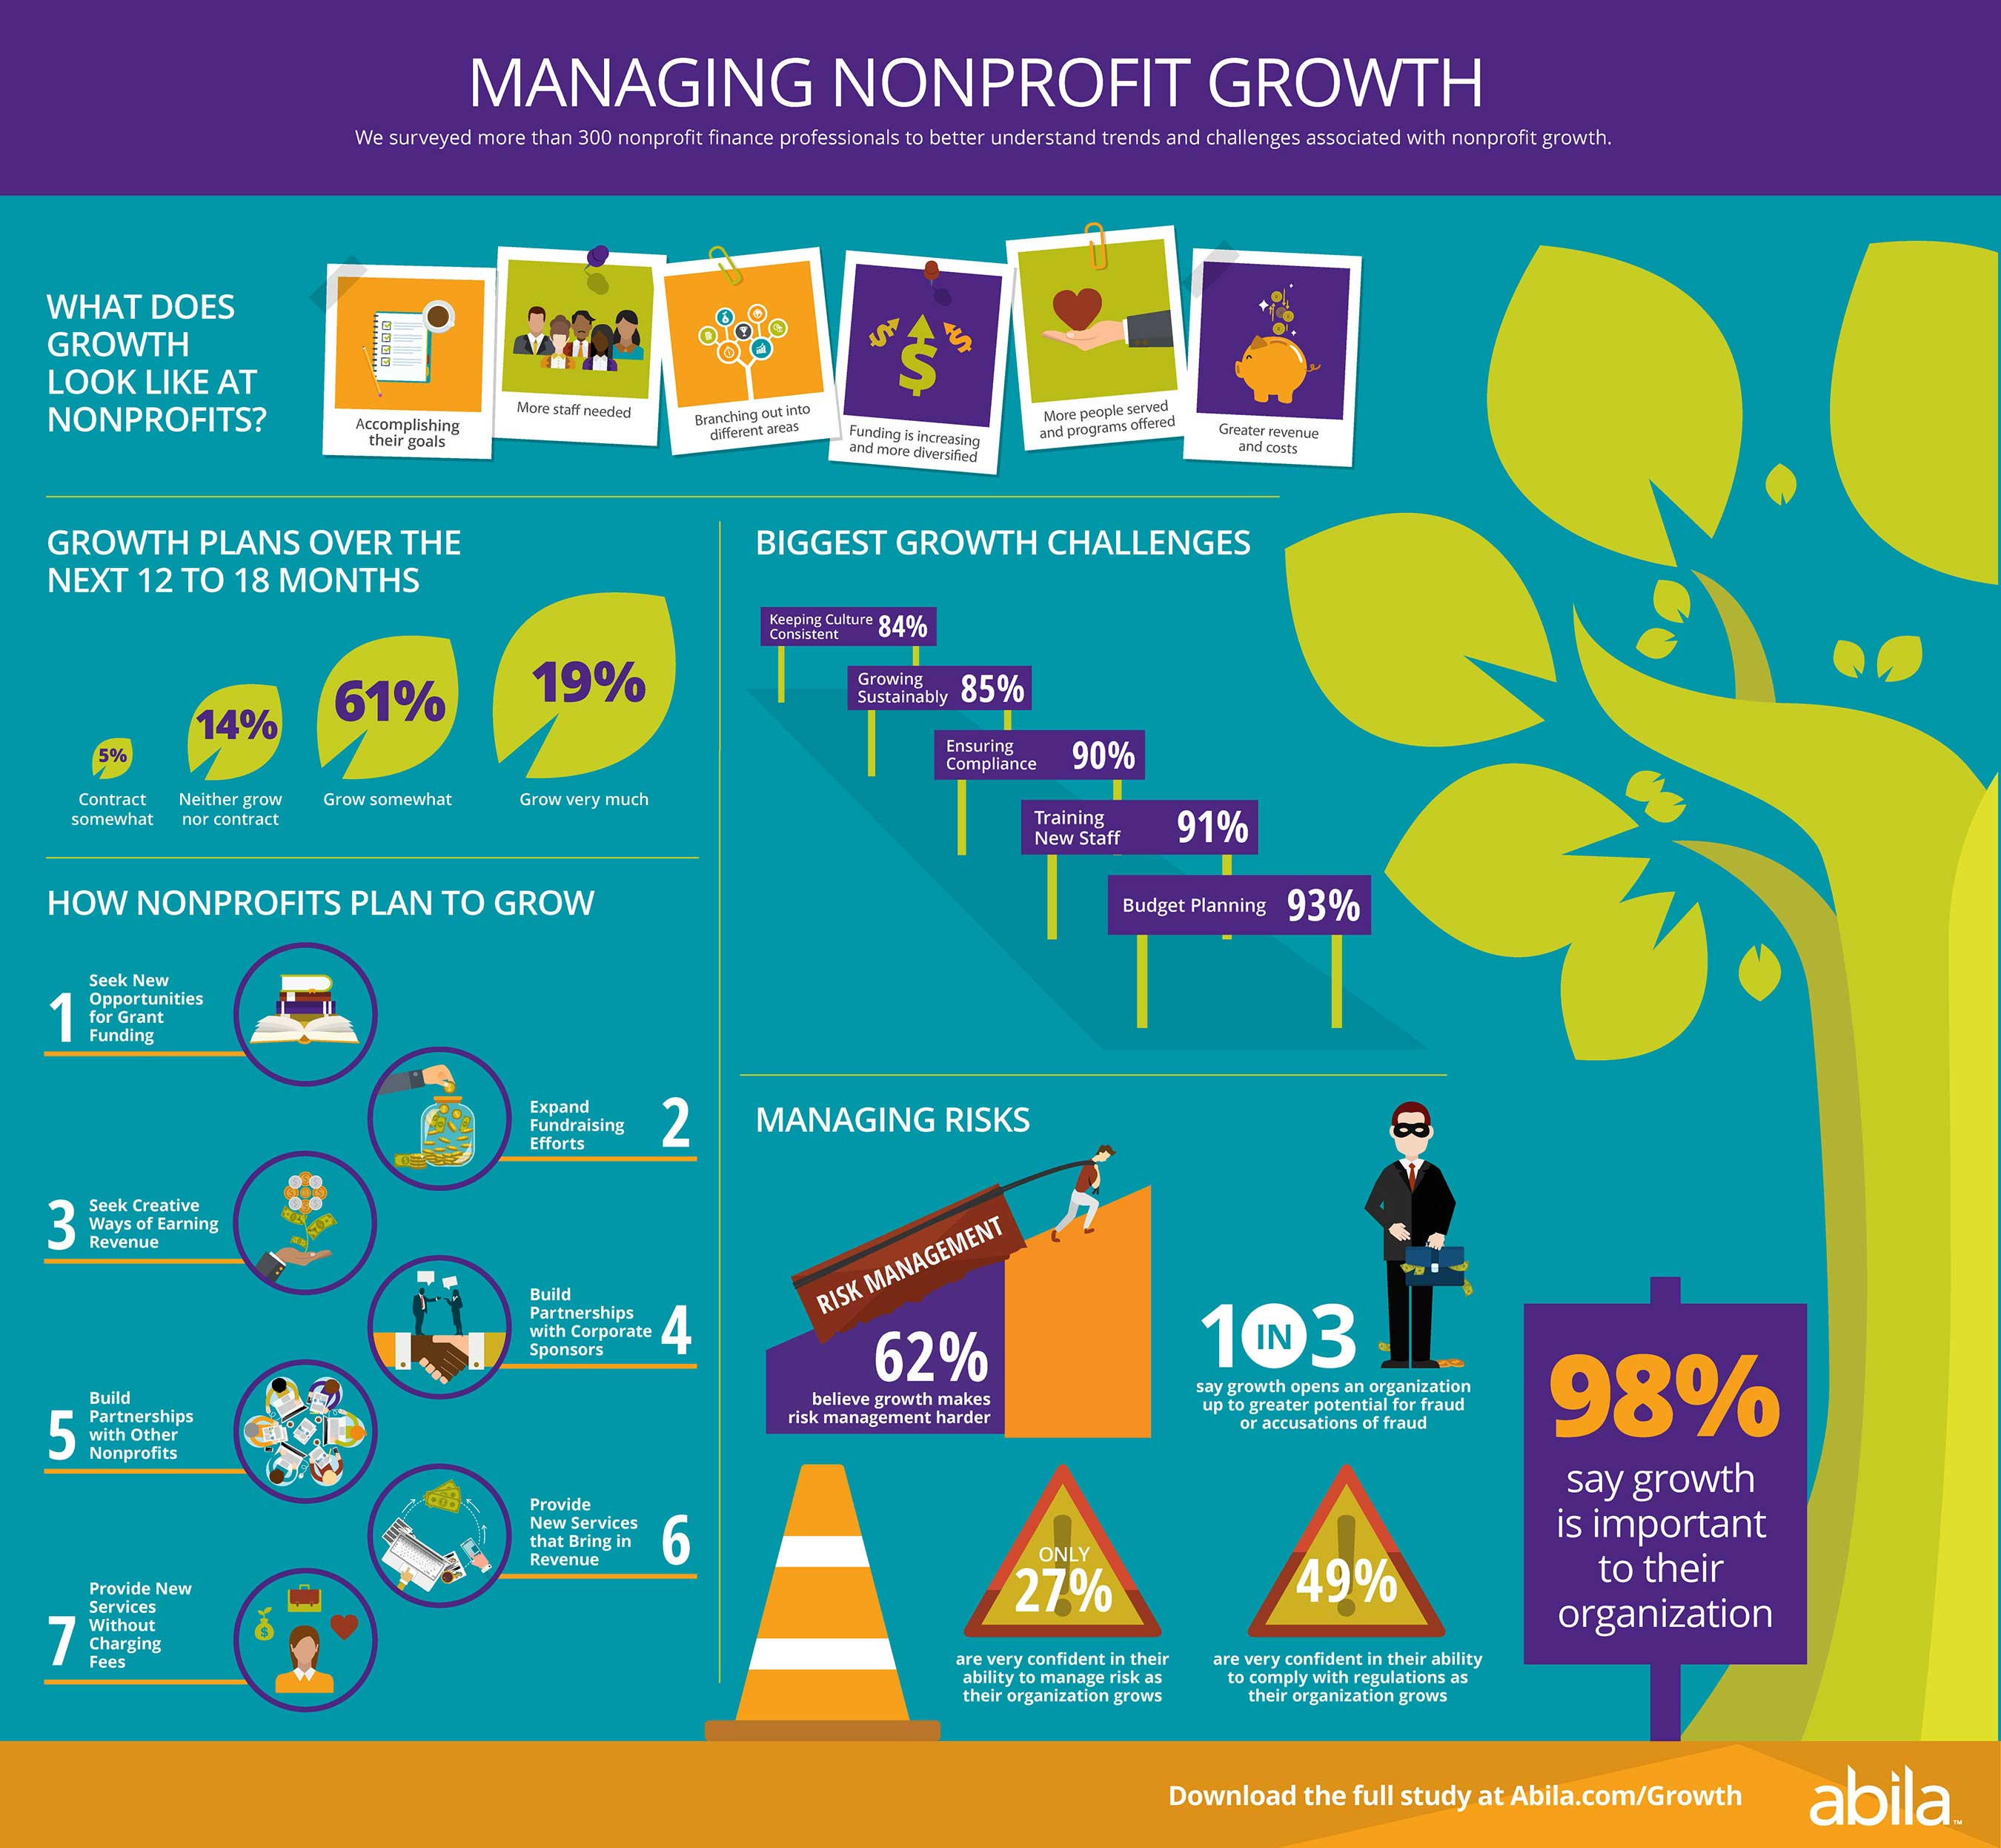 Abila Nonprofit Finance Study Finds Majority Of Nonprofits Plan To Grow Within The Next Year